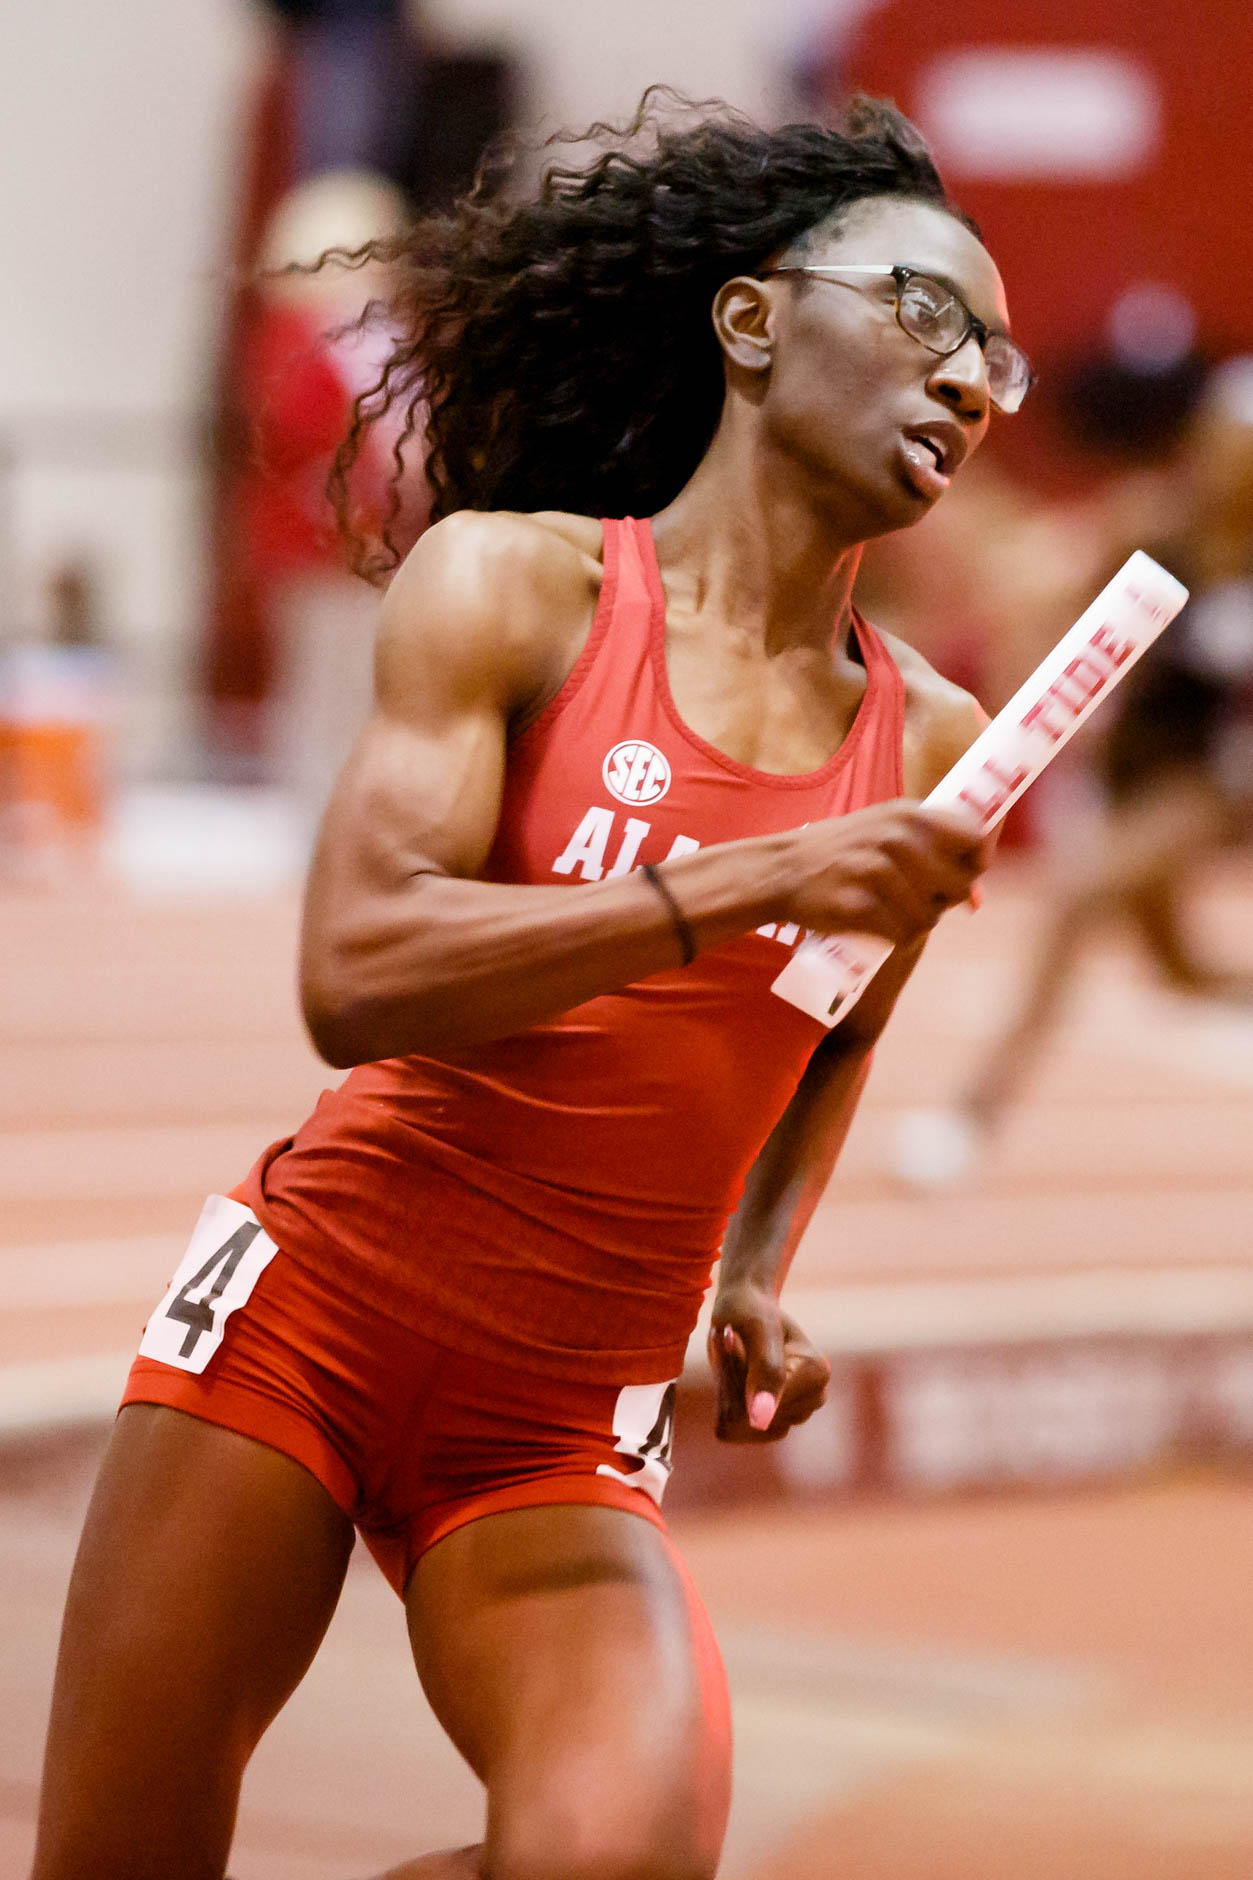 Alabama's Tamara Clark competes in the 4x400 meter relay during the Indiana University Relays in Bloomington, Indiana on Saturday, Feb. 1, 2020. (Photo by James Brosher)